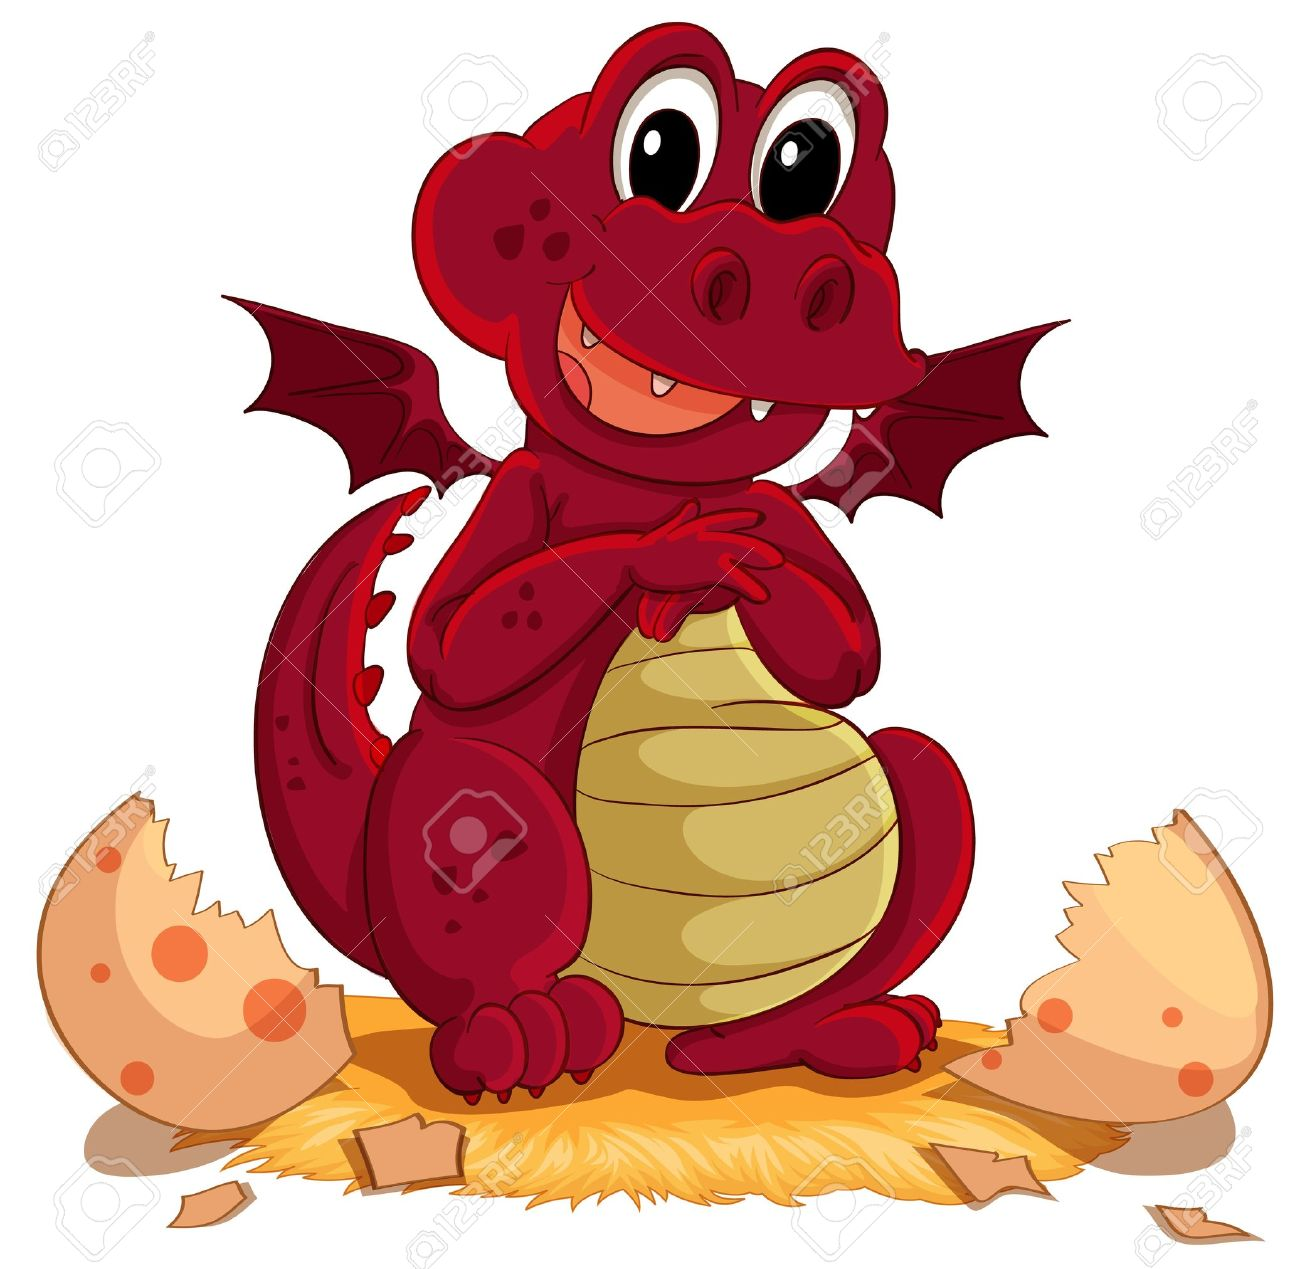 Illustration Of A Dragon Hatching Royalty Free Cliparts, Vectors.